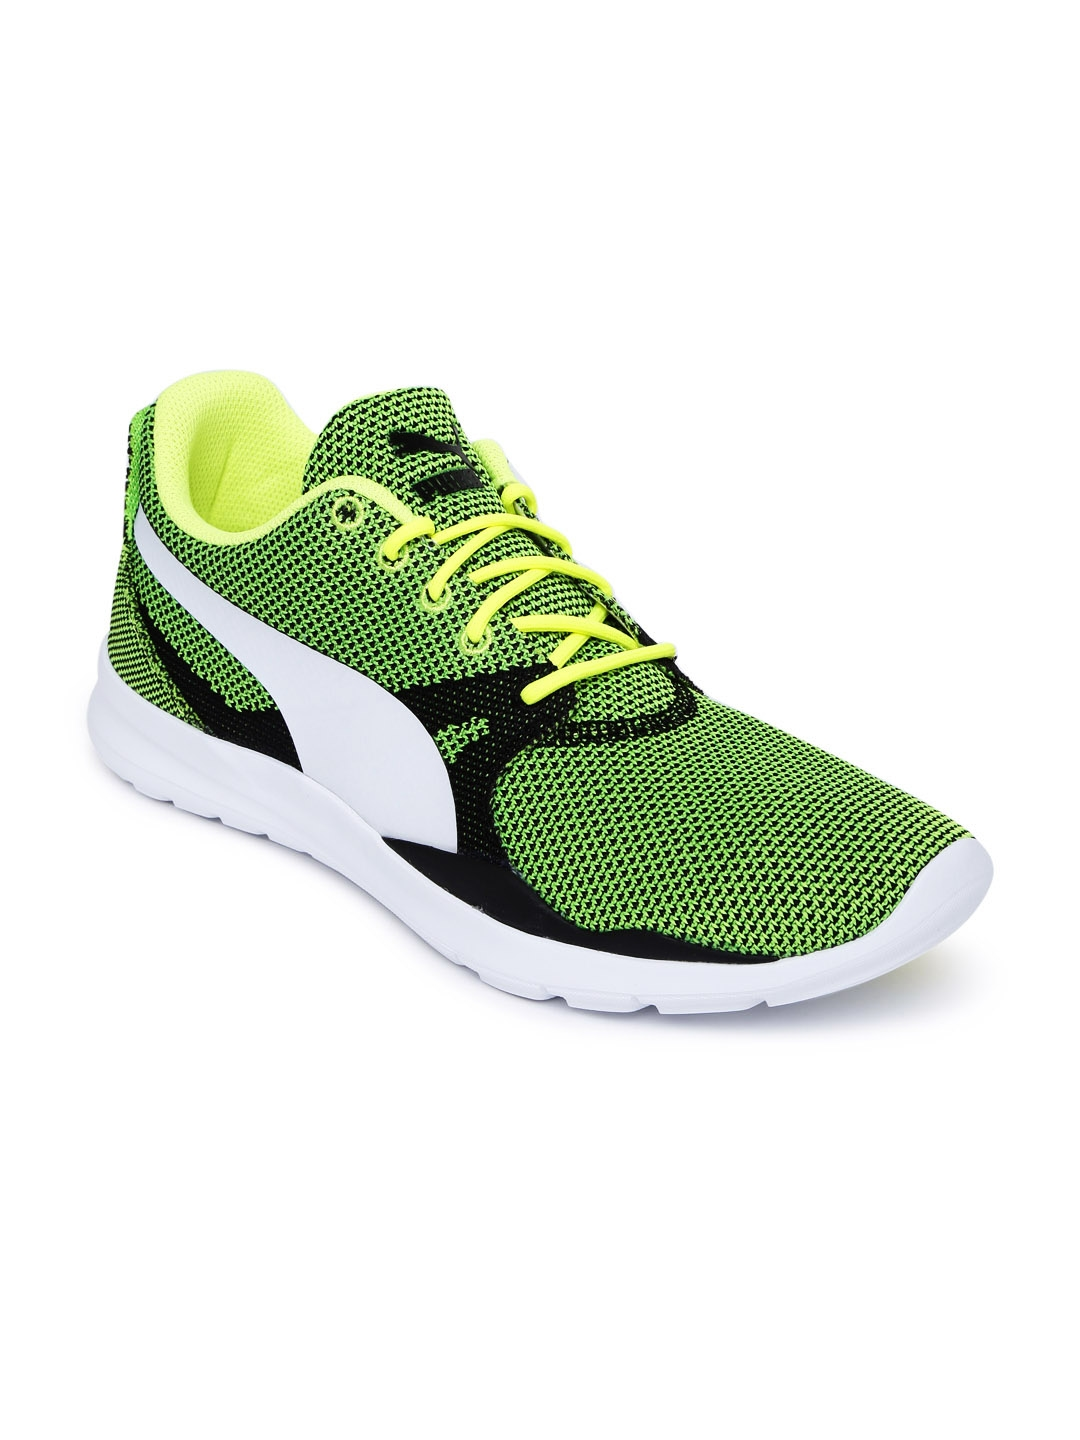 6db281745f00f7 Buy Puma Men Green Duplex Evo Knit Sneakers - Casual Shoes for Men ...